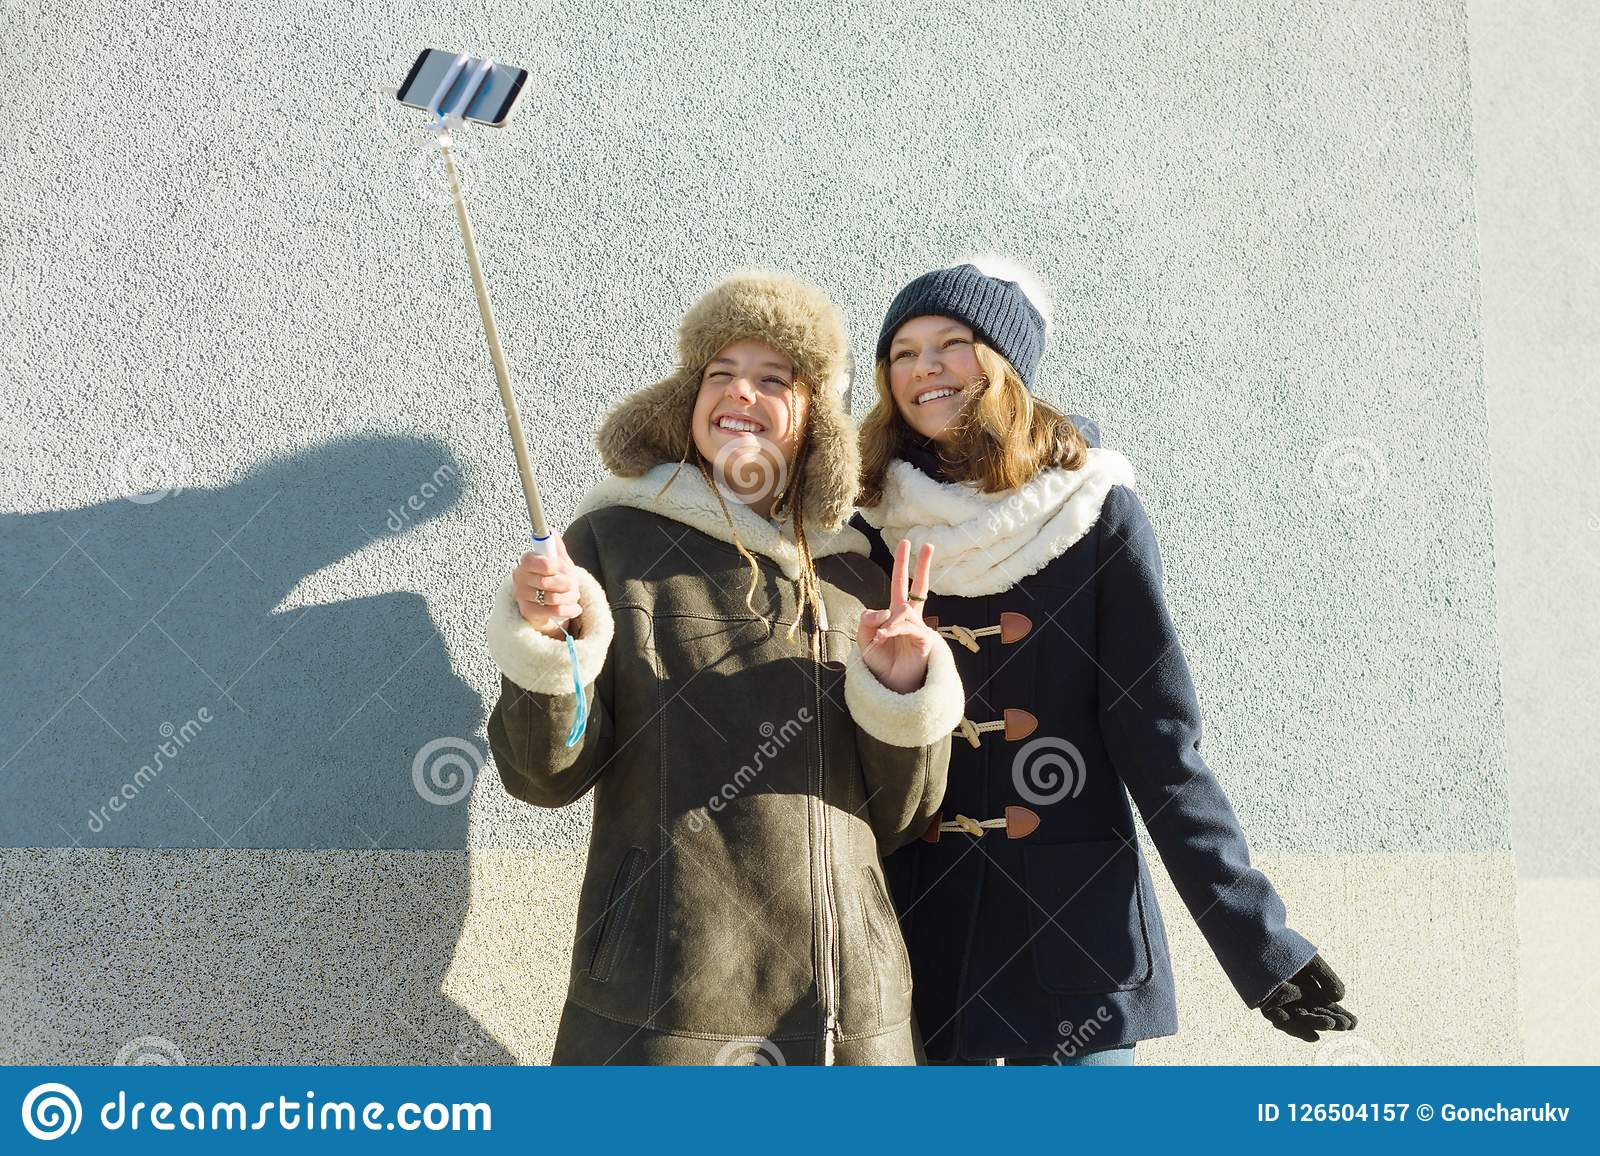 Two young teenage girls having fun outdoors, happy smiling girlfriends in winter clothes taking selfie, positive people and friend